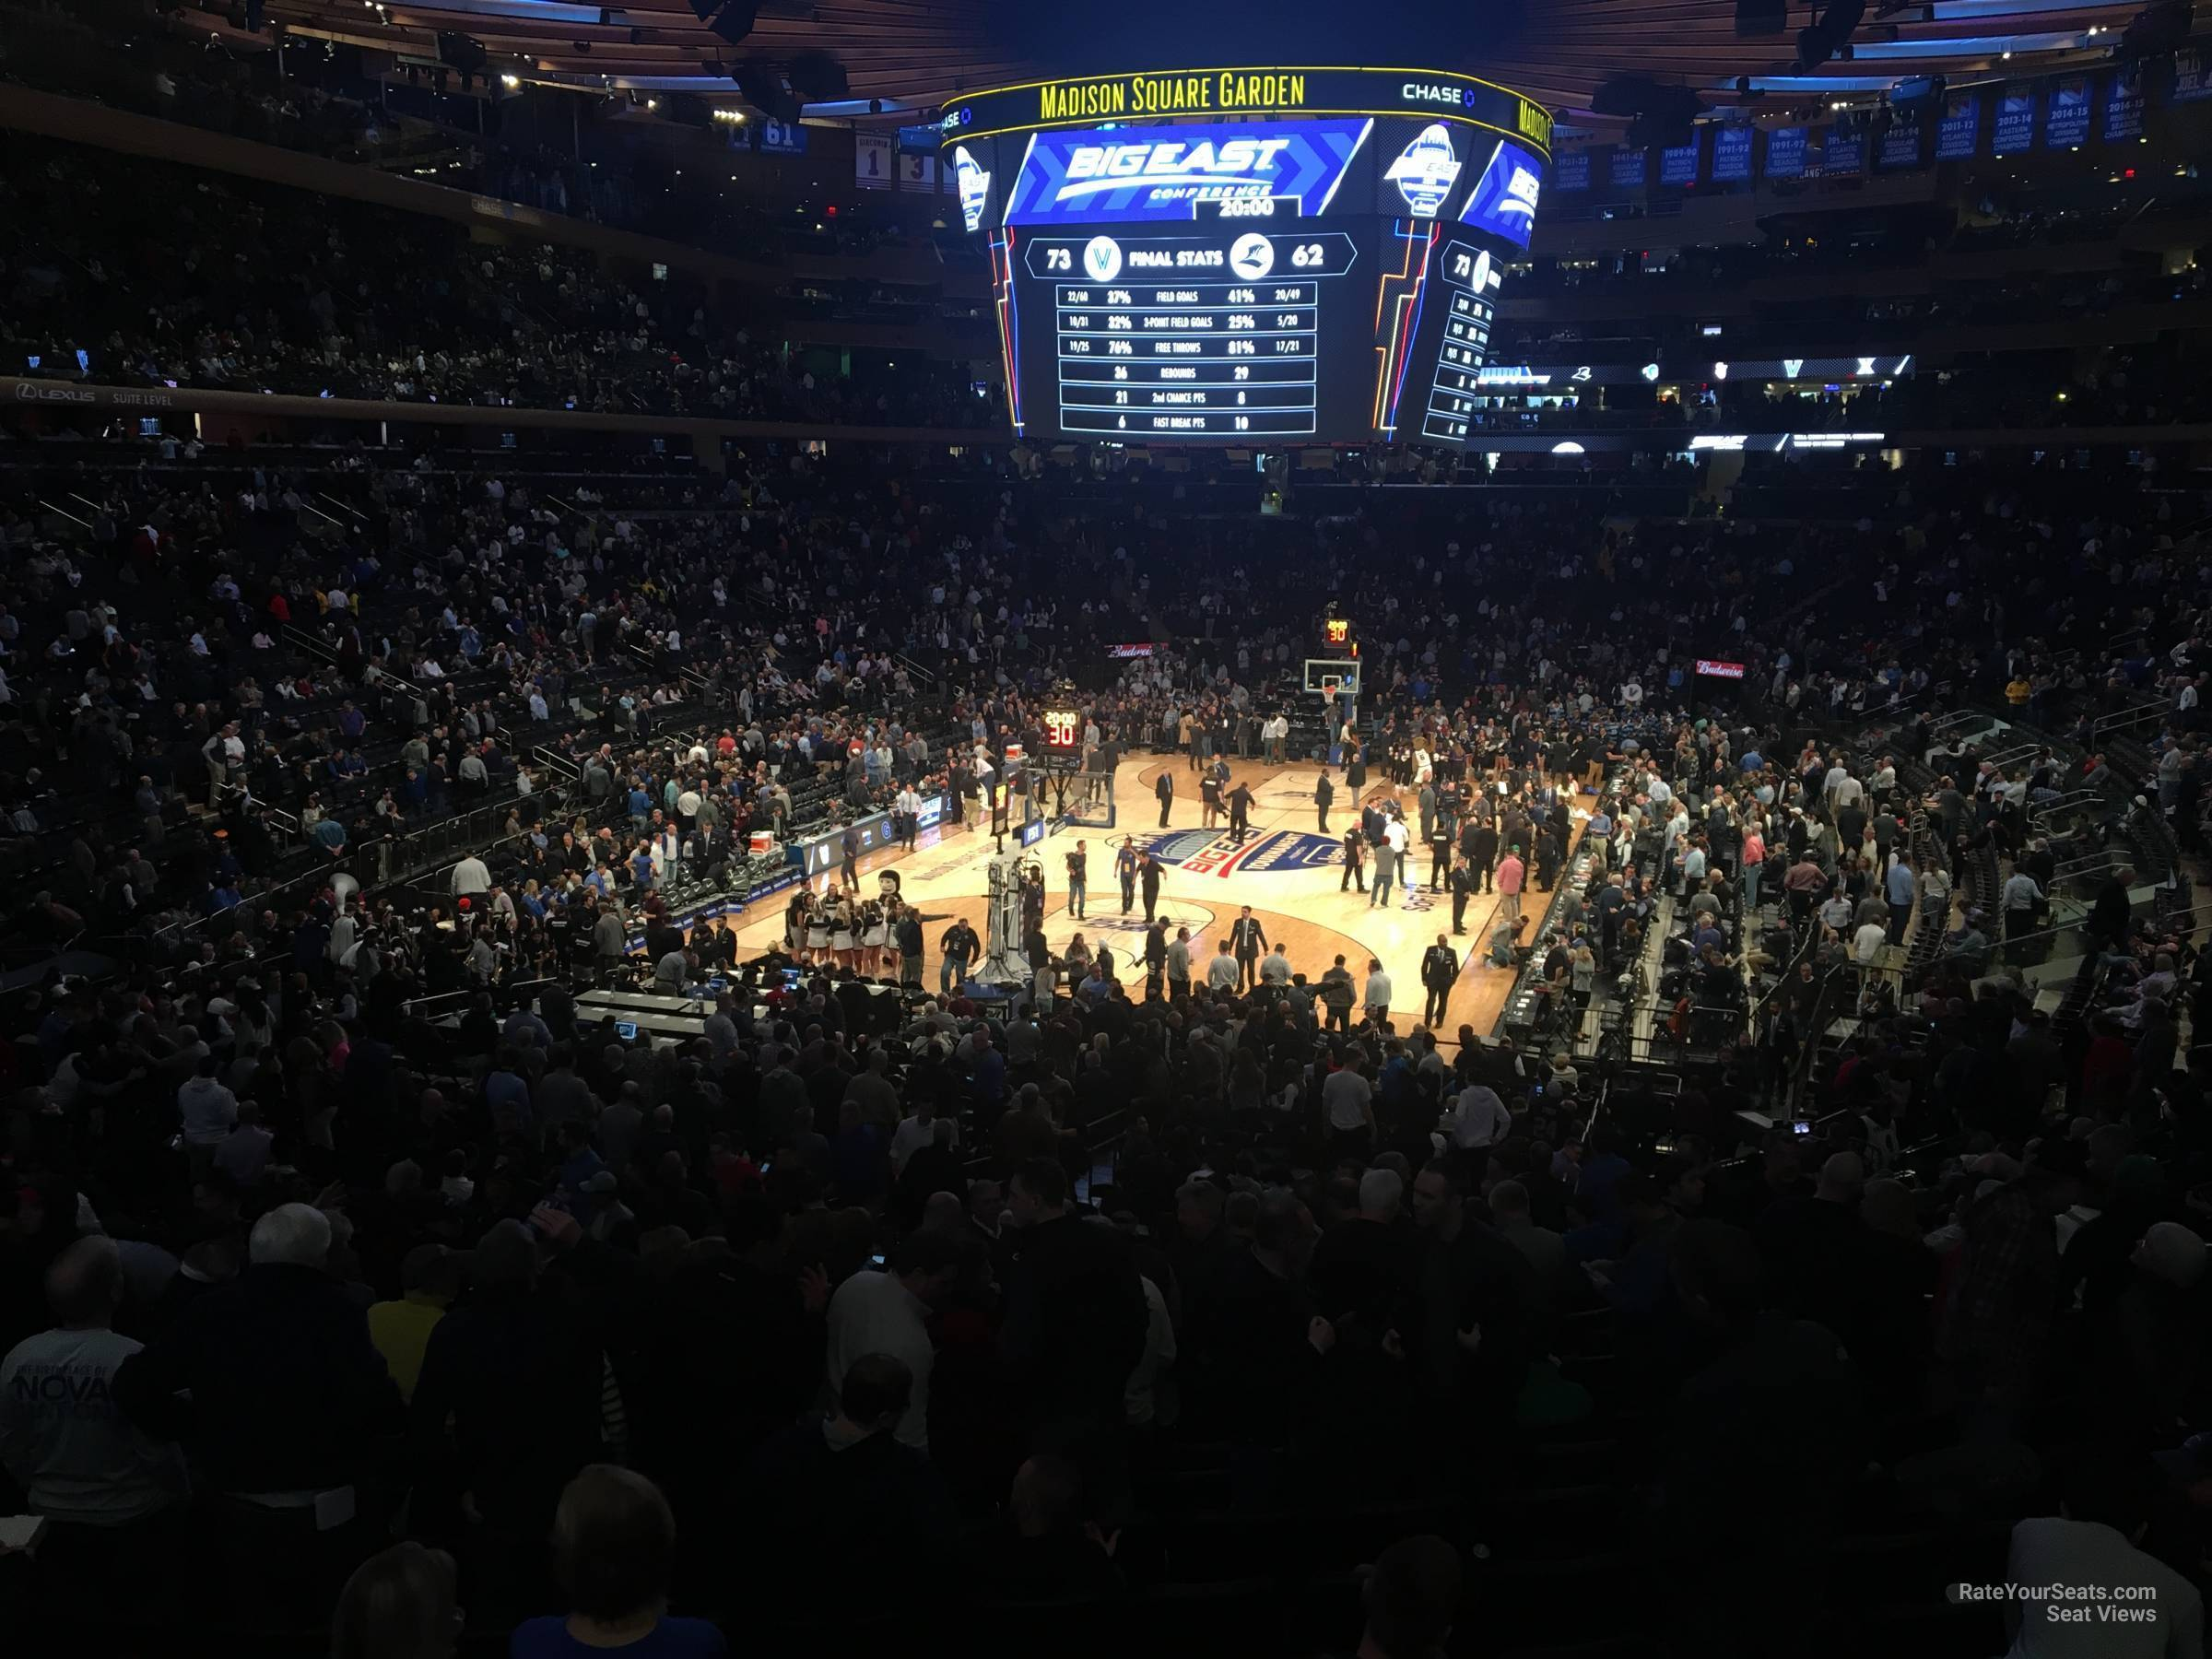 New York Knicks Seat View for Madison Square Garden Madison Club 65, Row 1